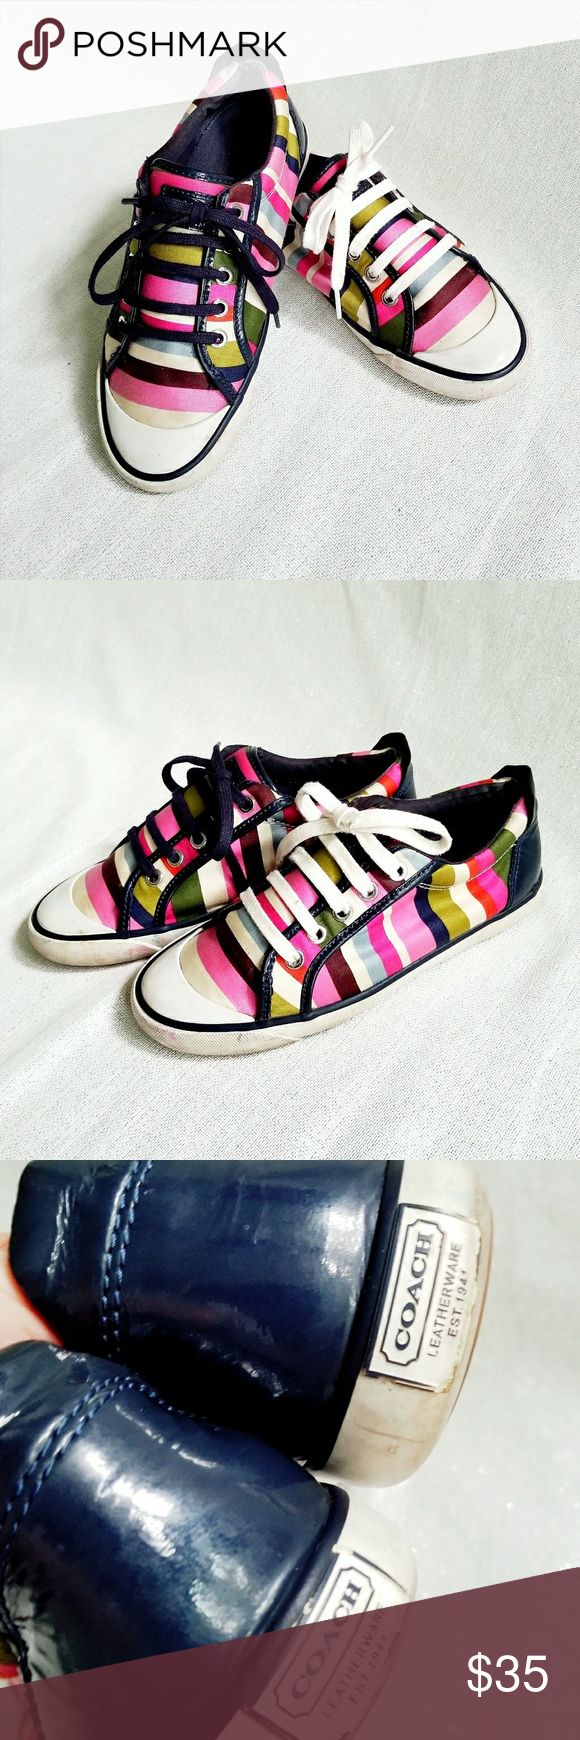 COACH Sneakers COACH Sneakers in cute bright stripes! Adorbs! Have fun with laces. Anything goes with these colors. Used, but in great condition still. Coach Shoes Sneakers